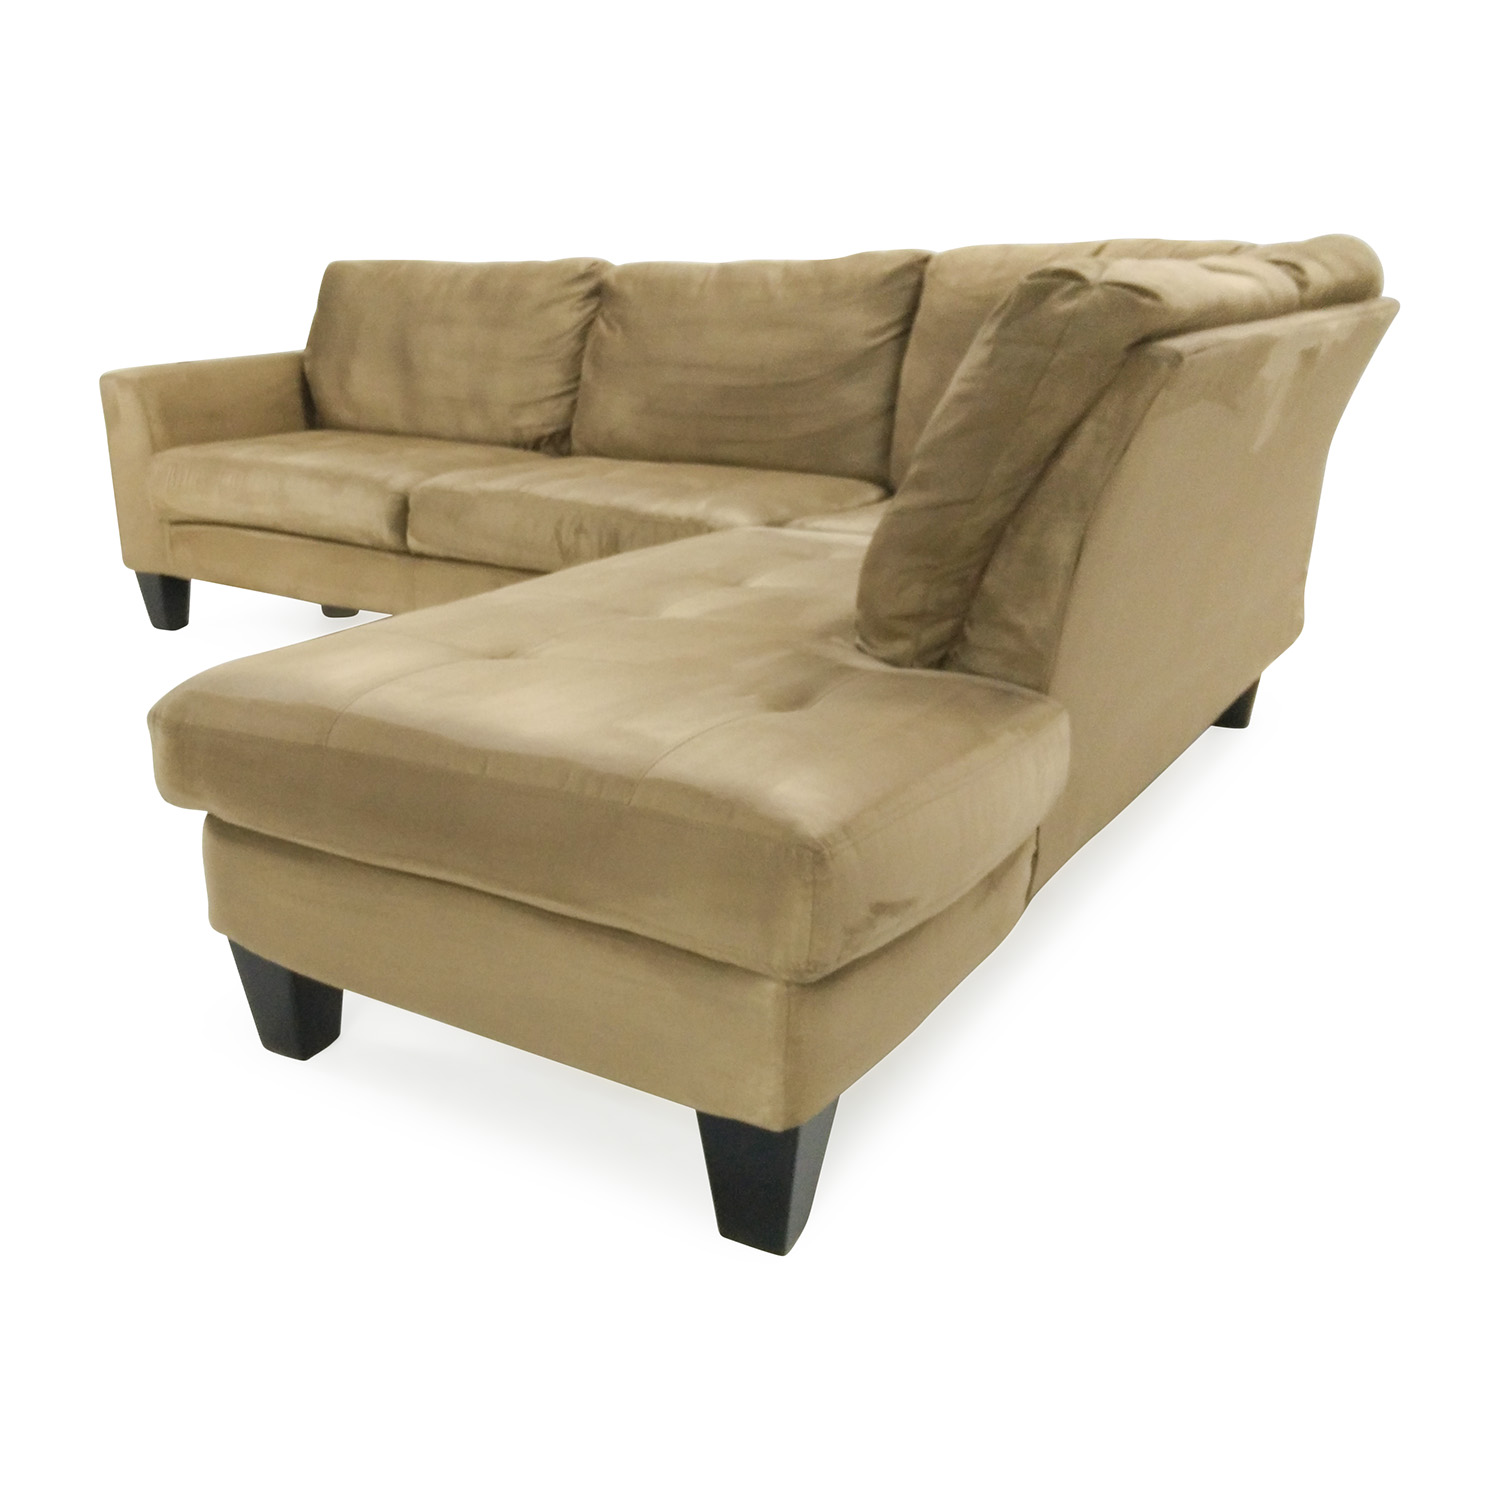 Furniture Clearance Nyc: Jennifer Furniture Jennifer Furniture Sectional